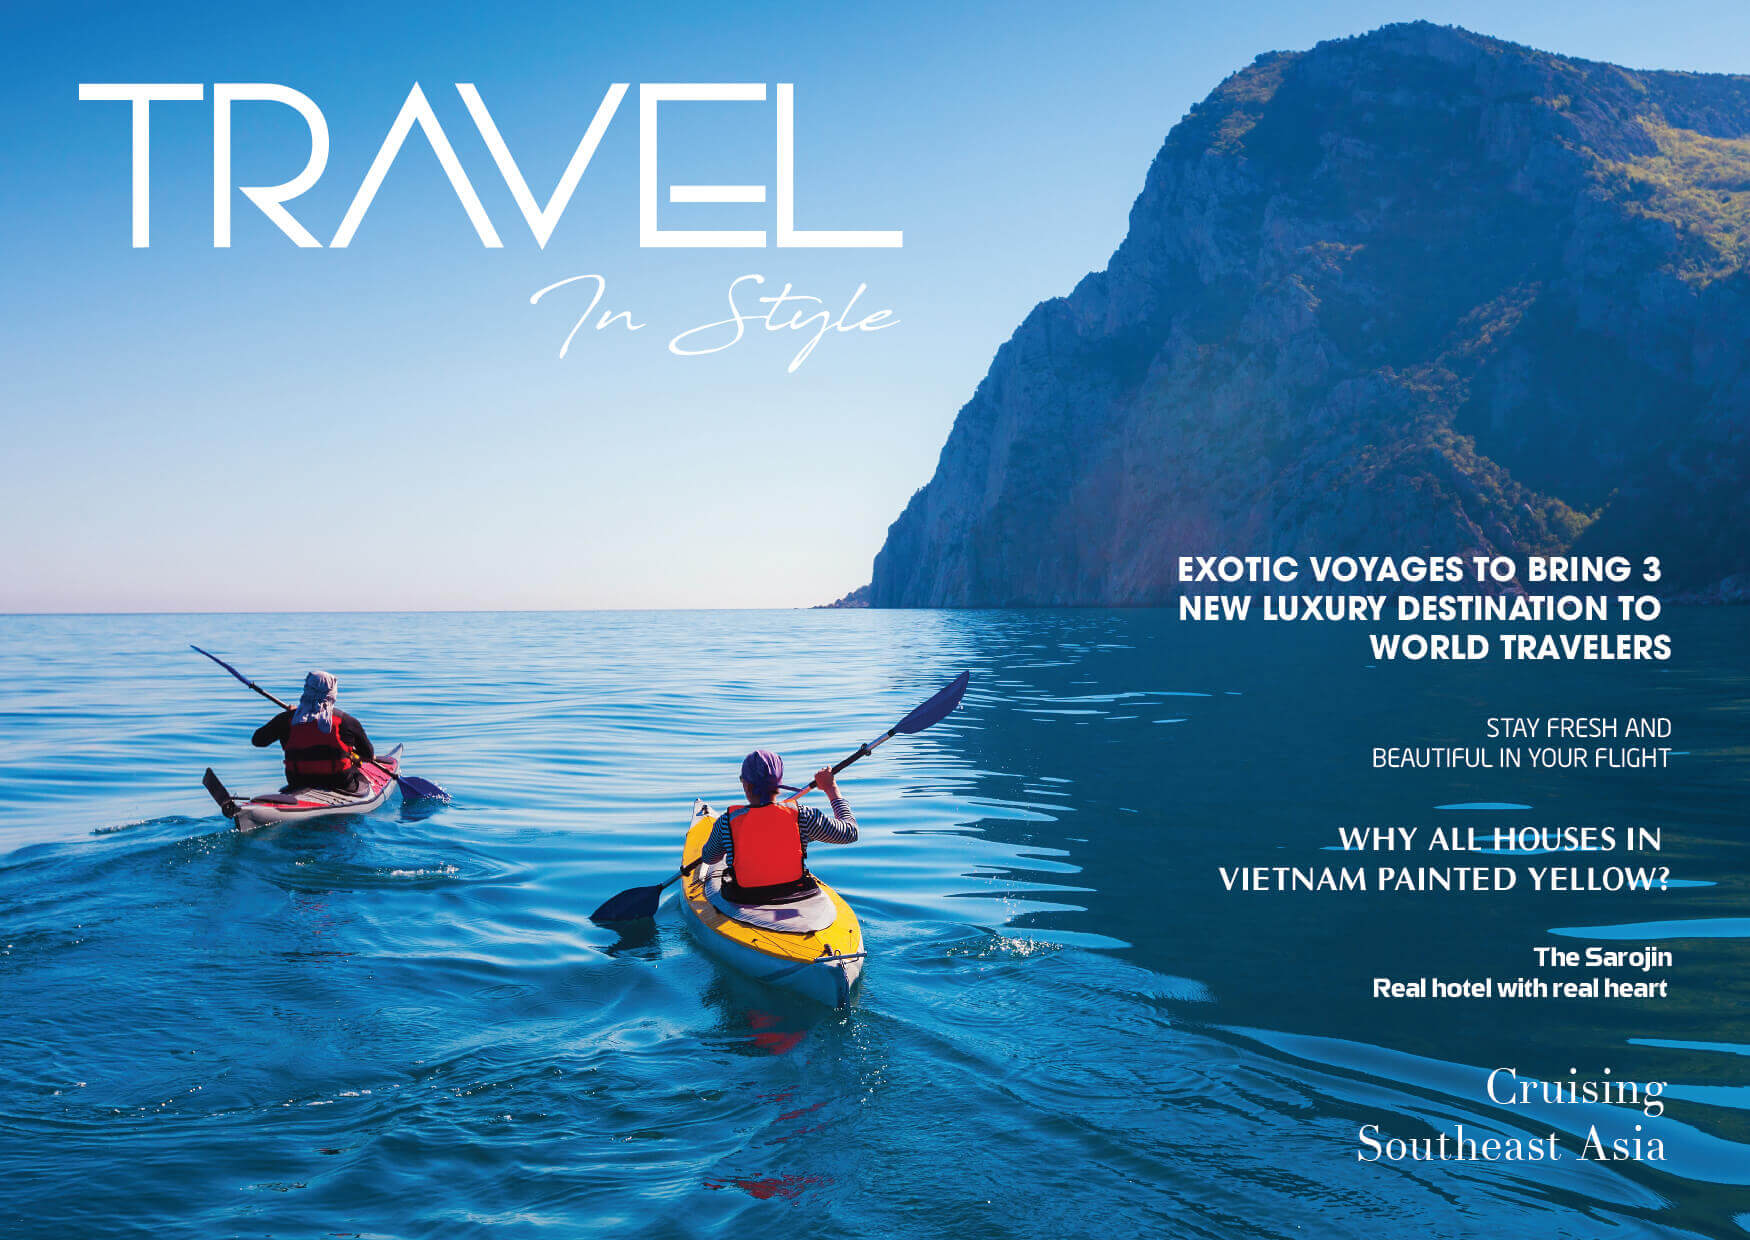 Travel in Style 15th Edition by Exotic Voyages